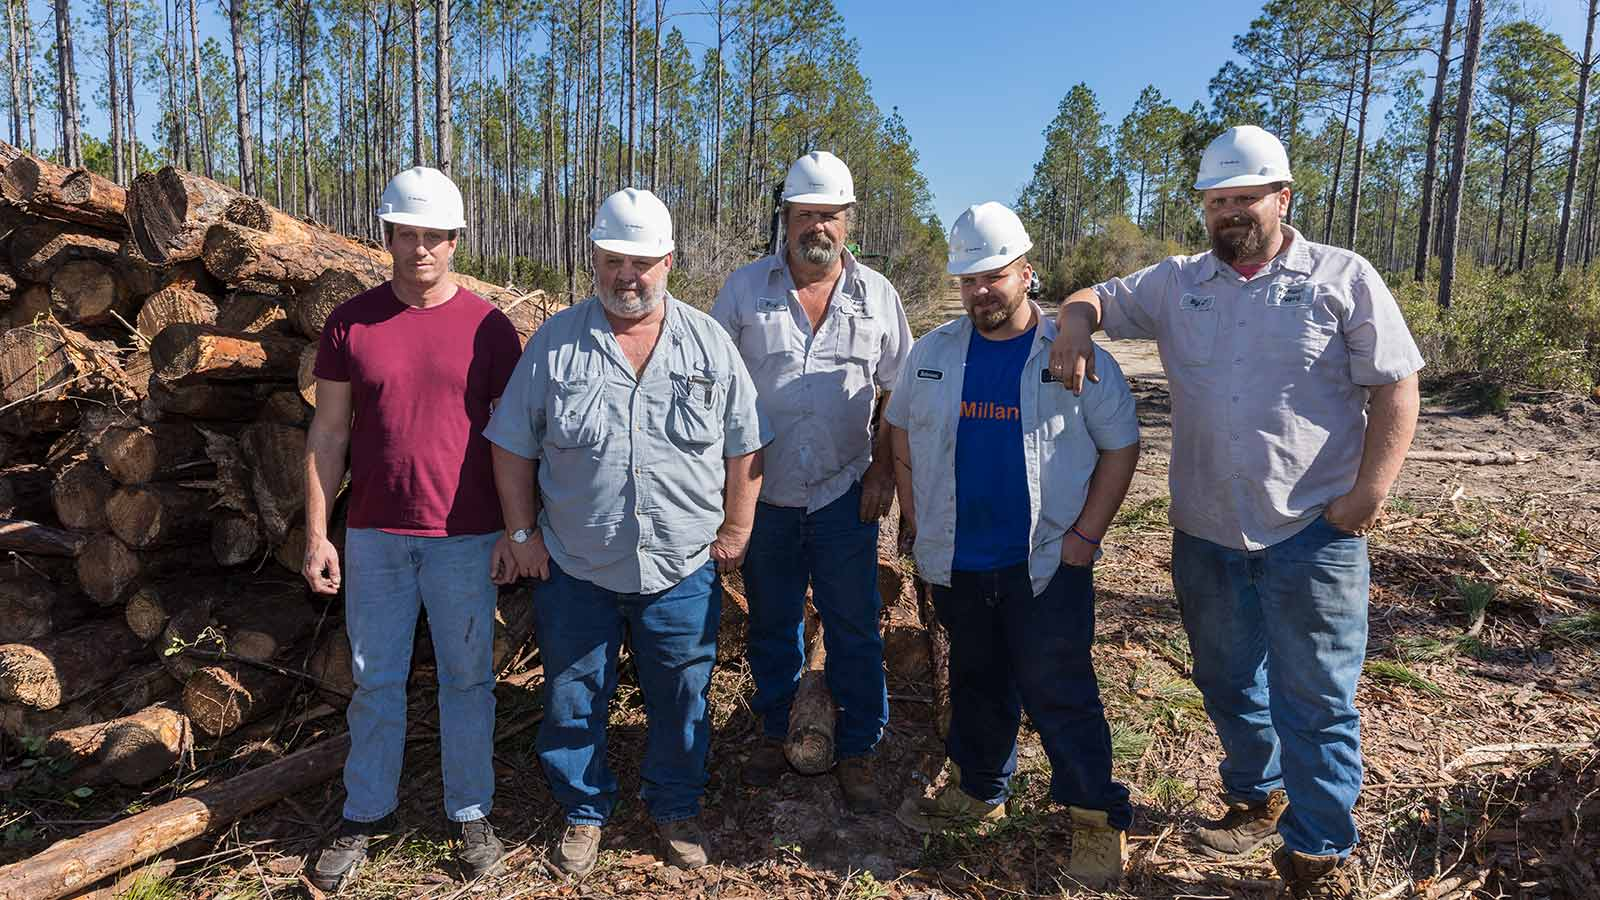 Steven McMillan stands with his logging crew next to a pile of trees in Tate's Hell State Forest